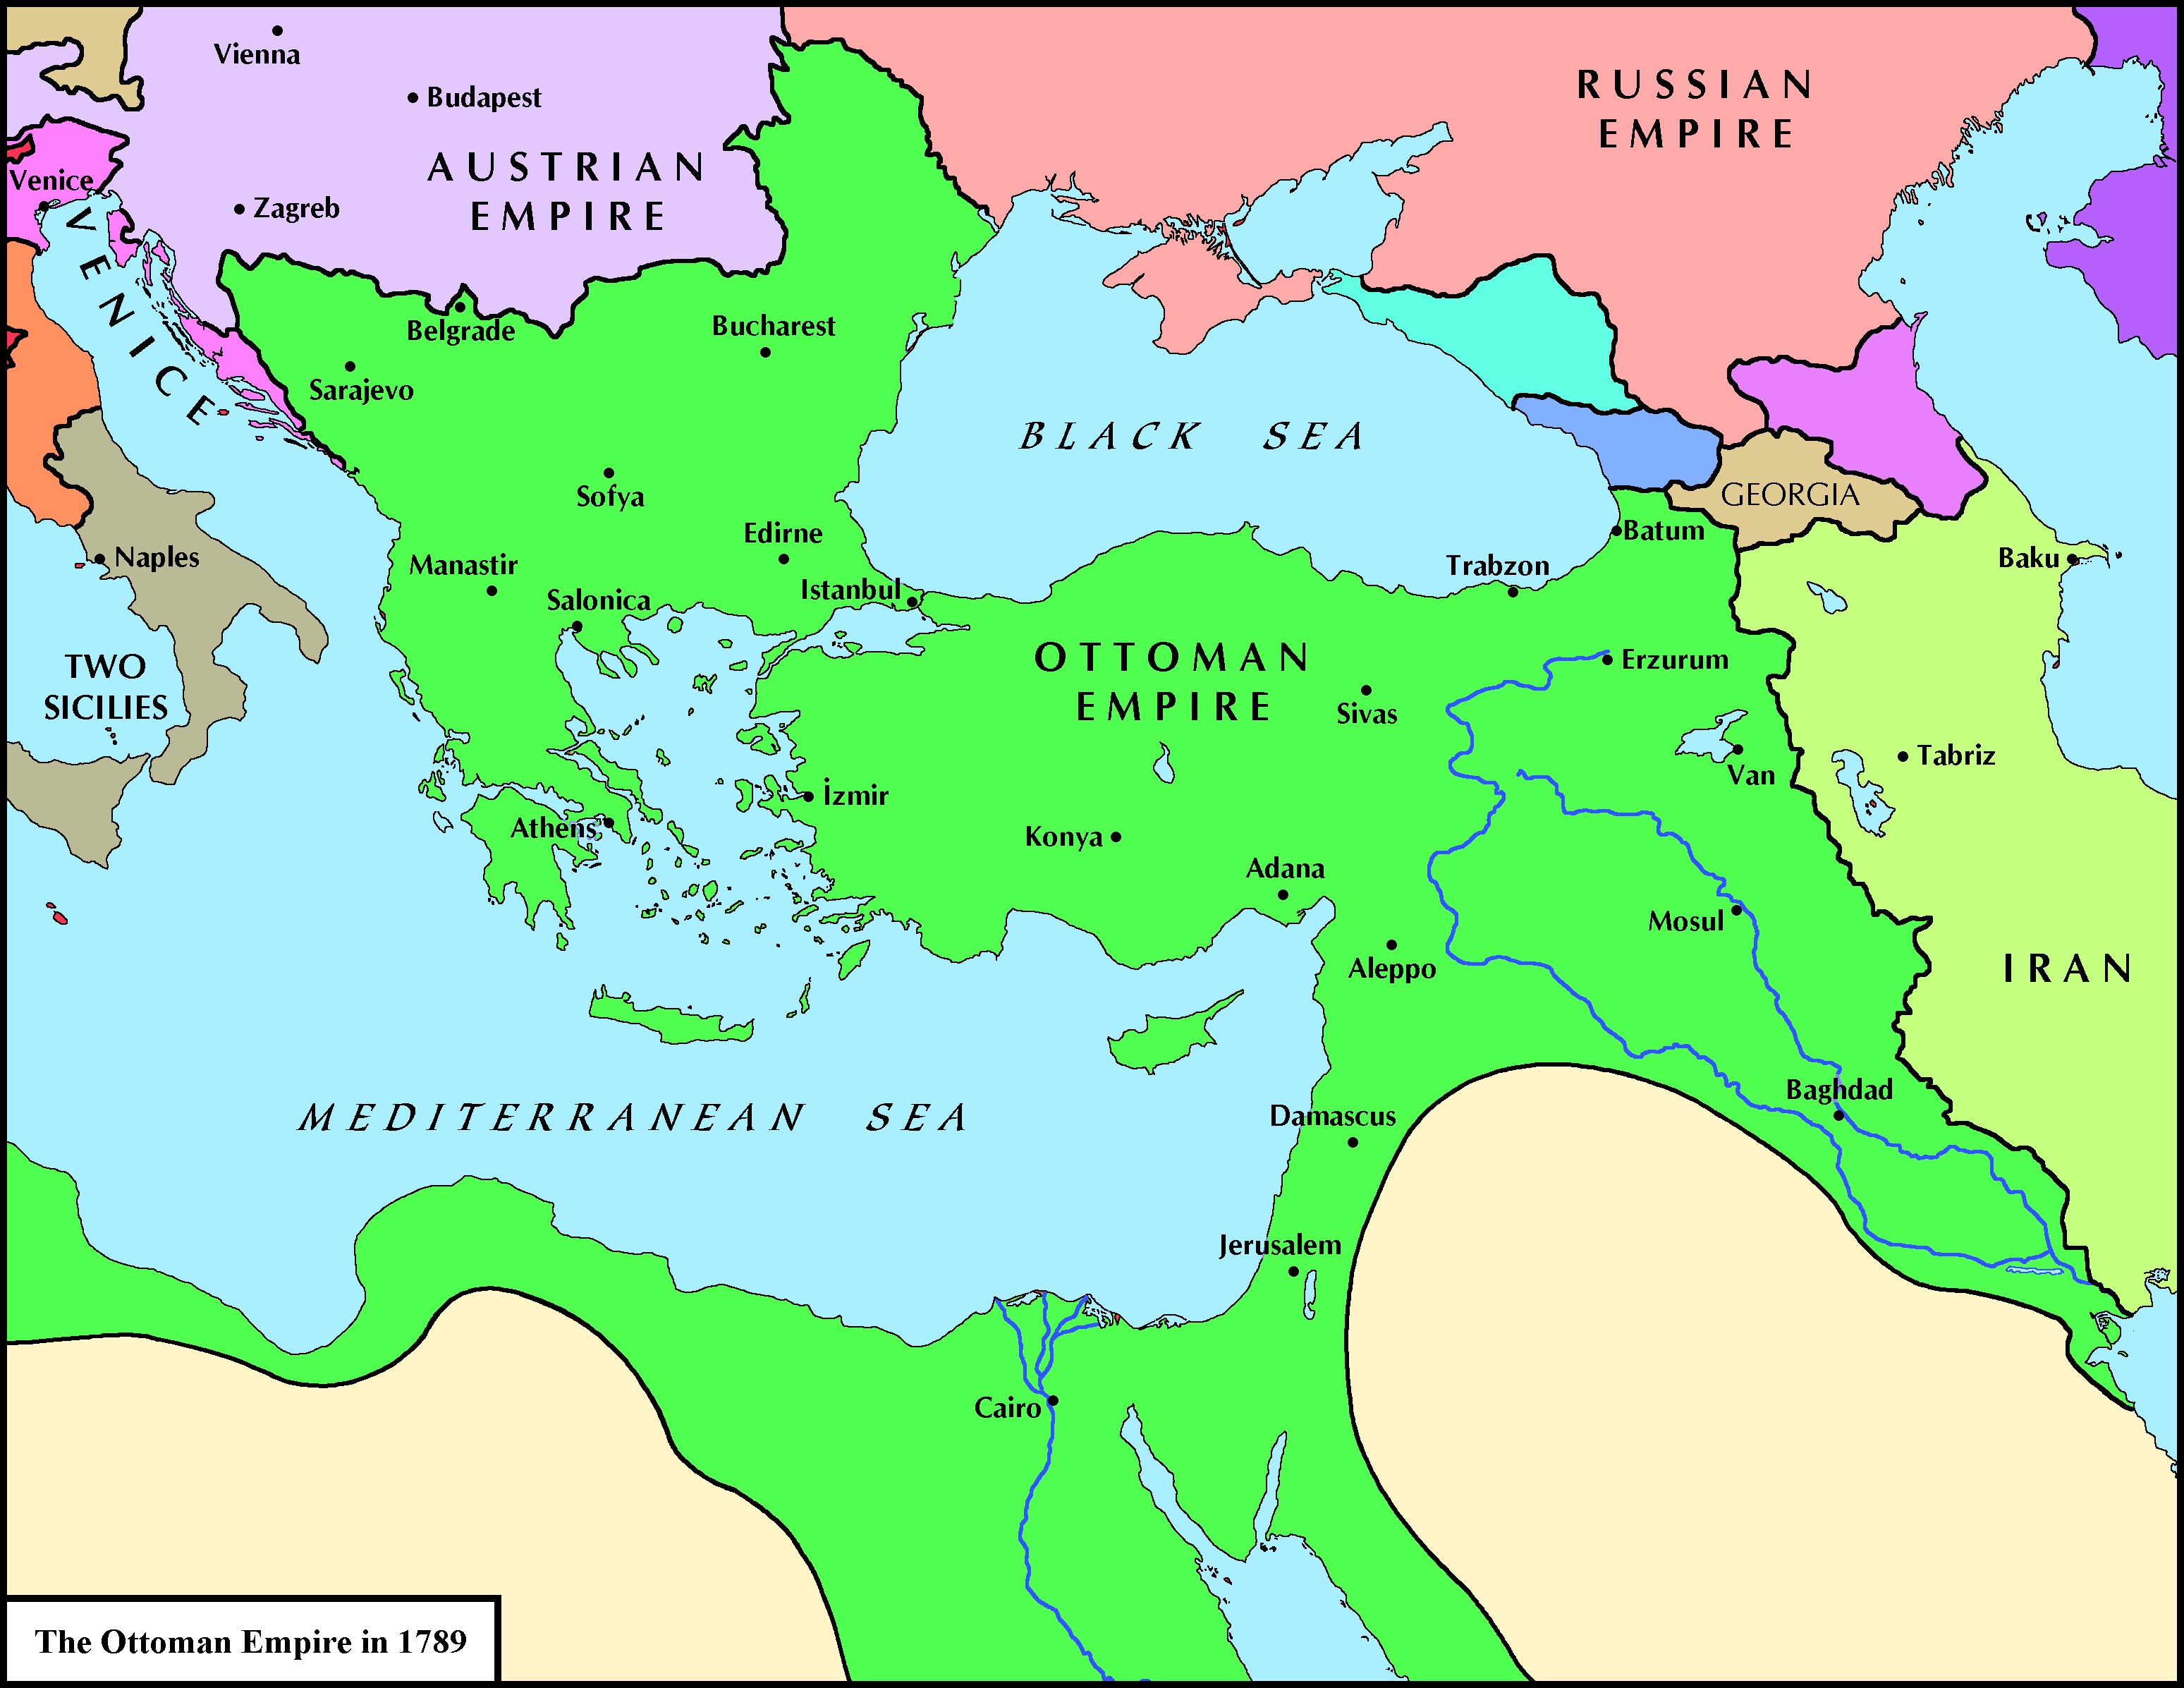 WORKSHEET 1 Modernization and the Challenge of Europe THE OTTOMAN EMPIRE AND MODERN TURKEY HAD THE BAD LUCK TO BEGIN MODERNIZATION IN THE WORST DAYS OF EUROPEAN IMPERIALISM.